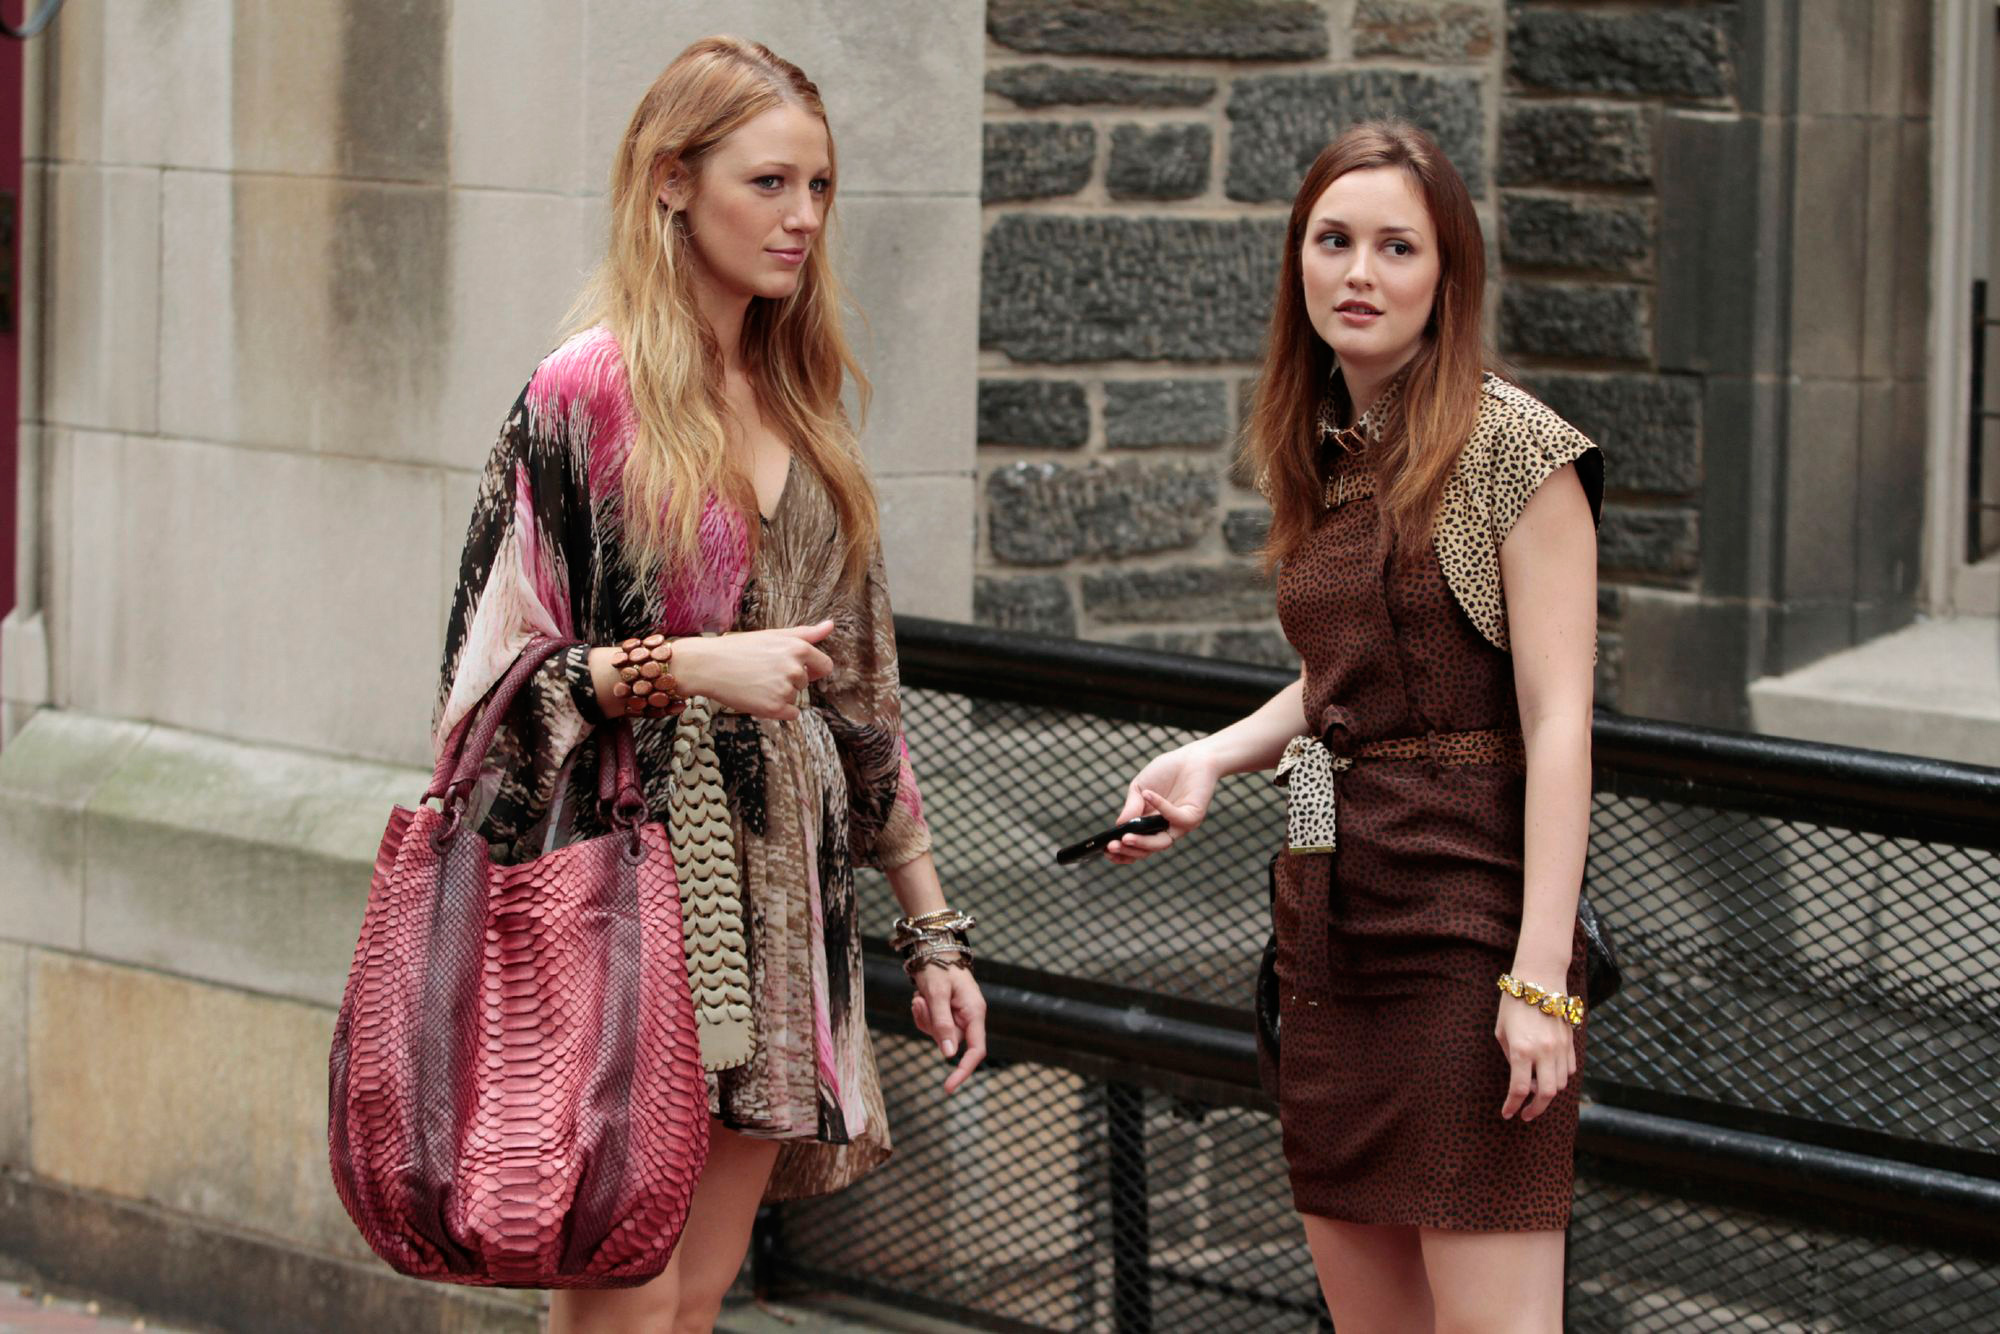 6 Plot Changes That Made the <em>Gossip Girl</em> Show Better Than the Books